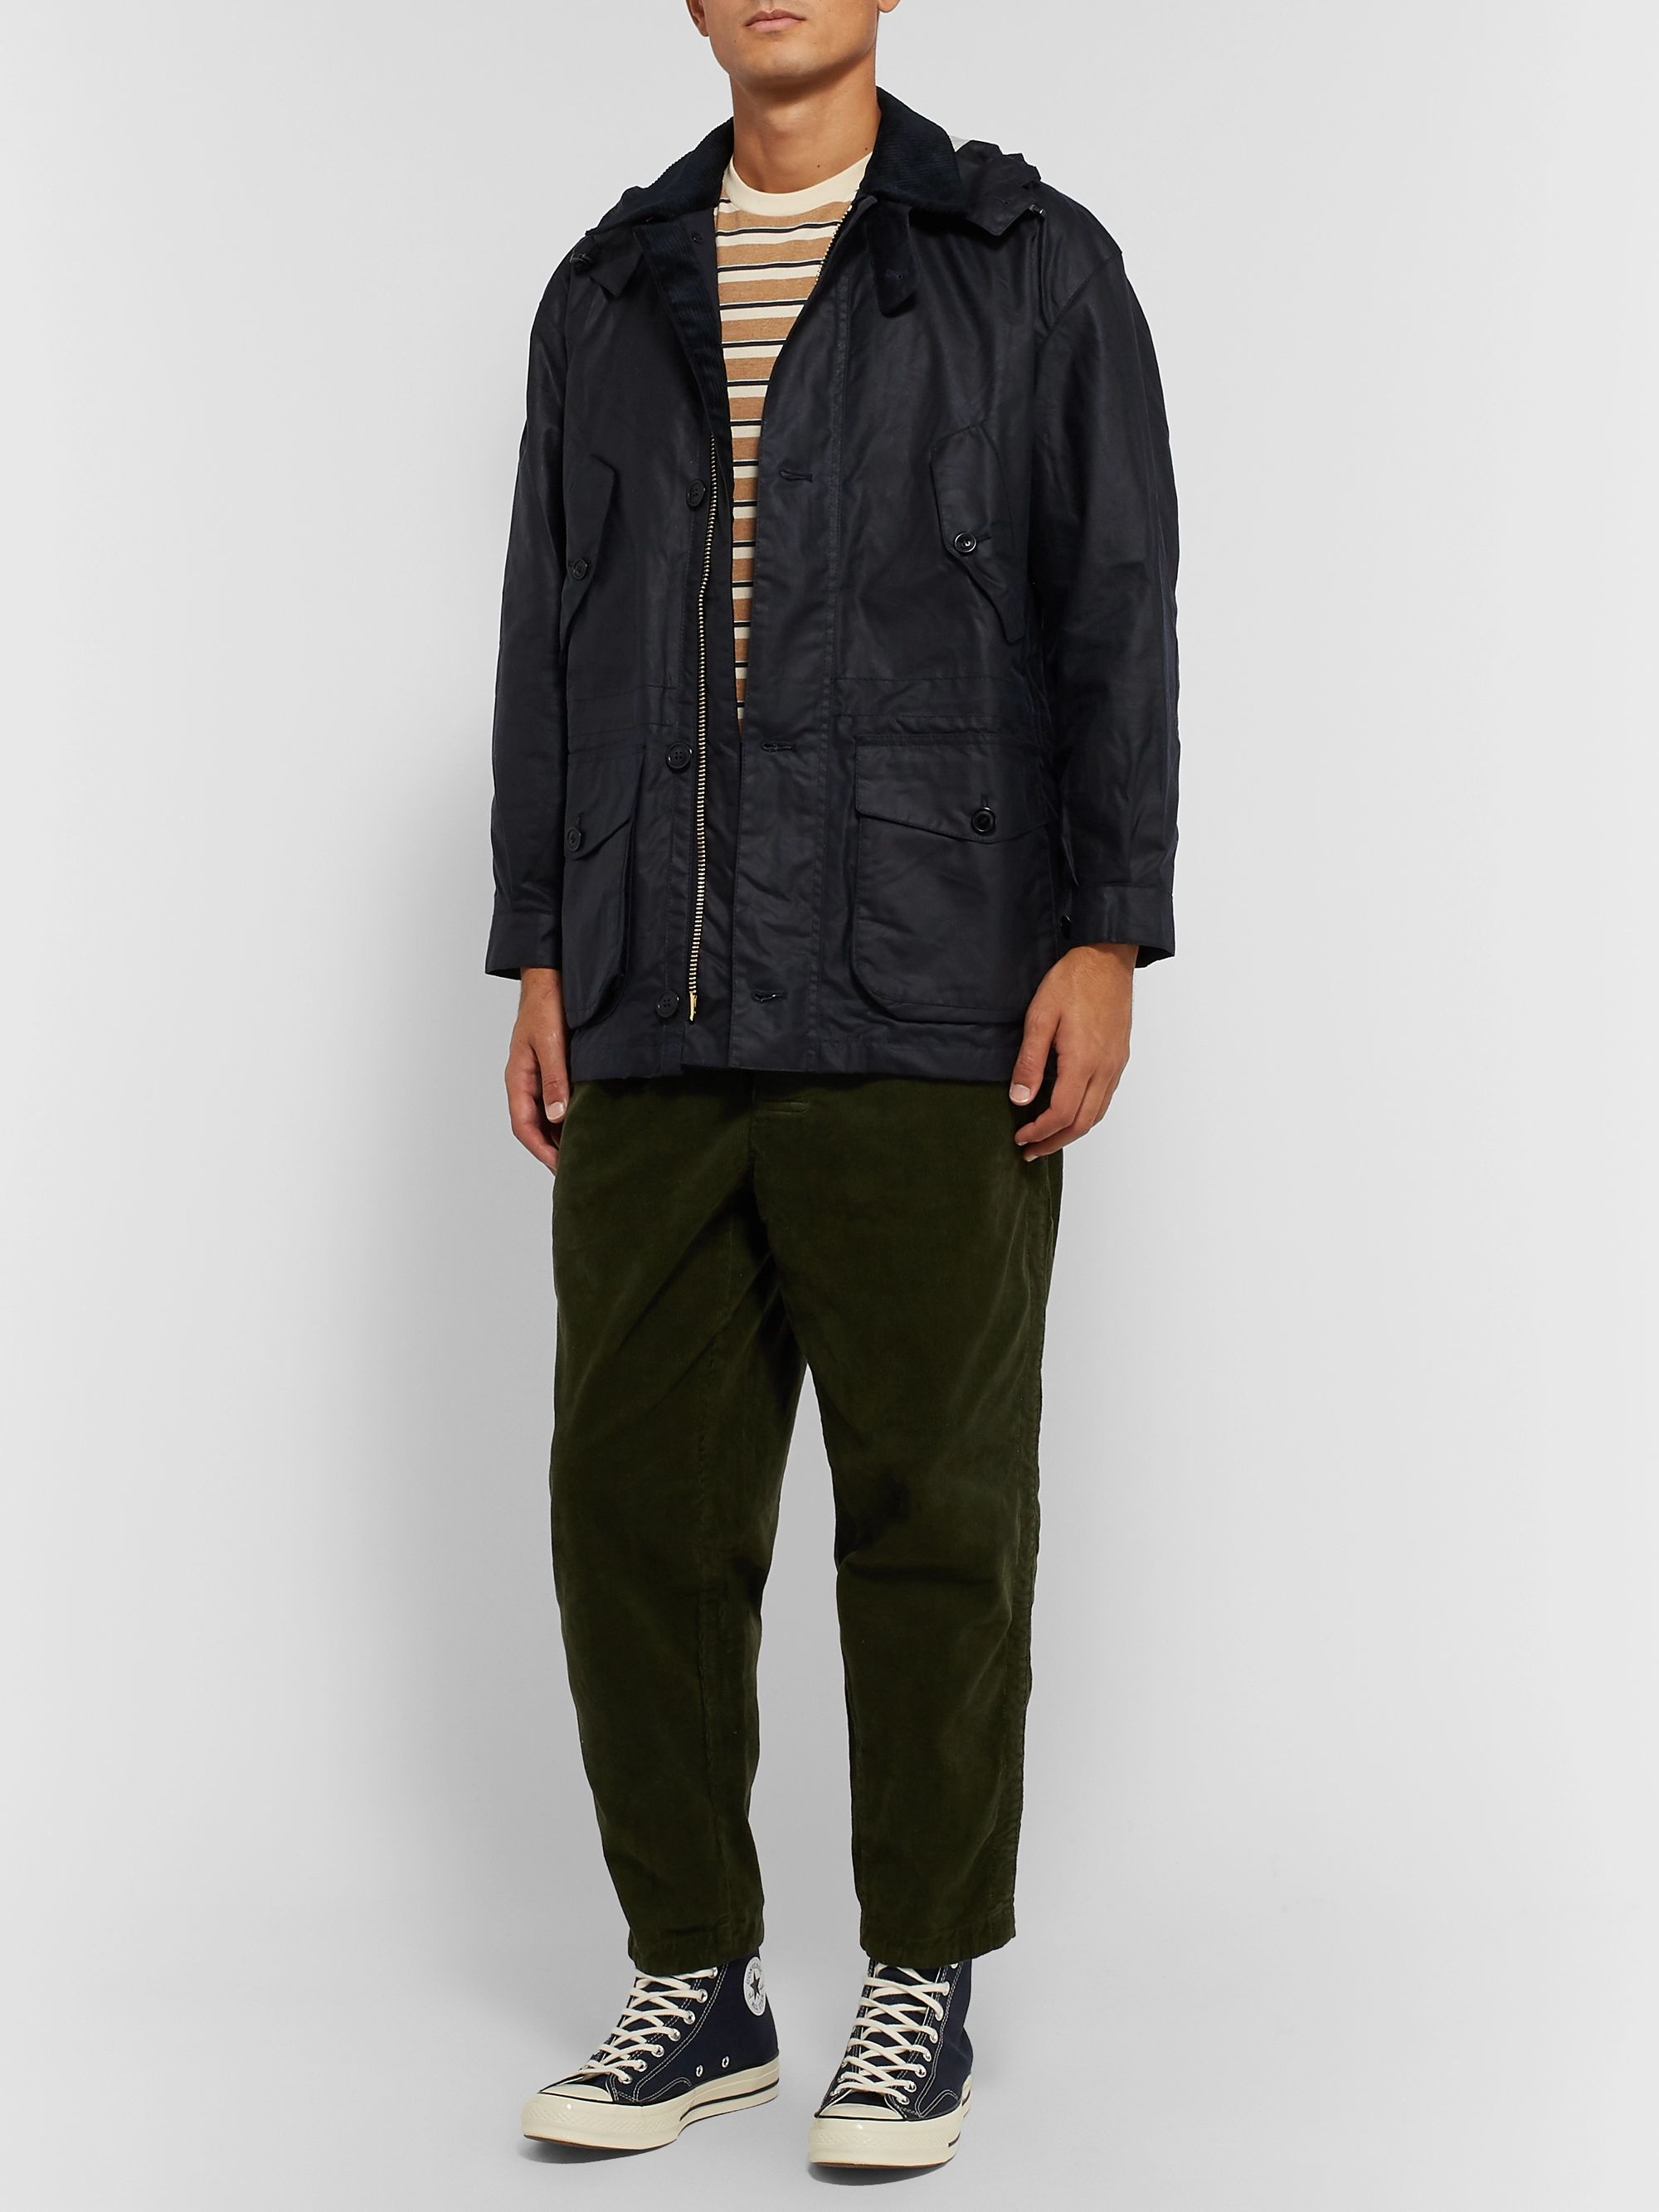 Barbour White Label White Label Endurance Hooded Corduroy-Trimmed Waxed-Cotton Jacket